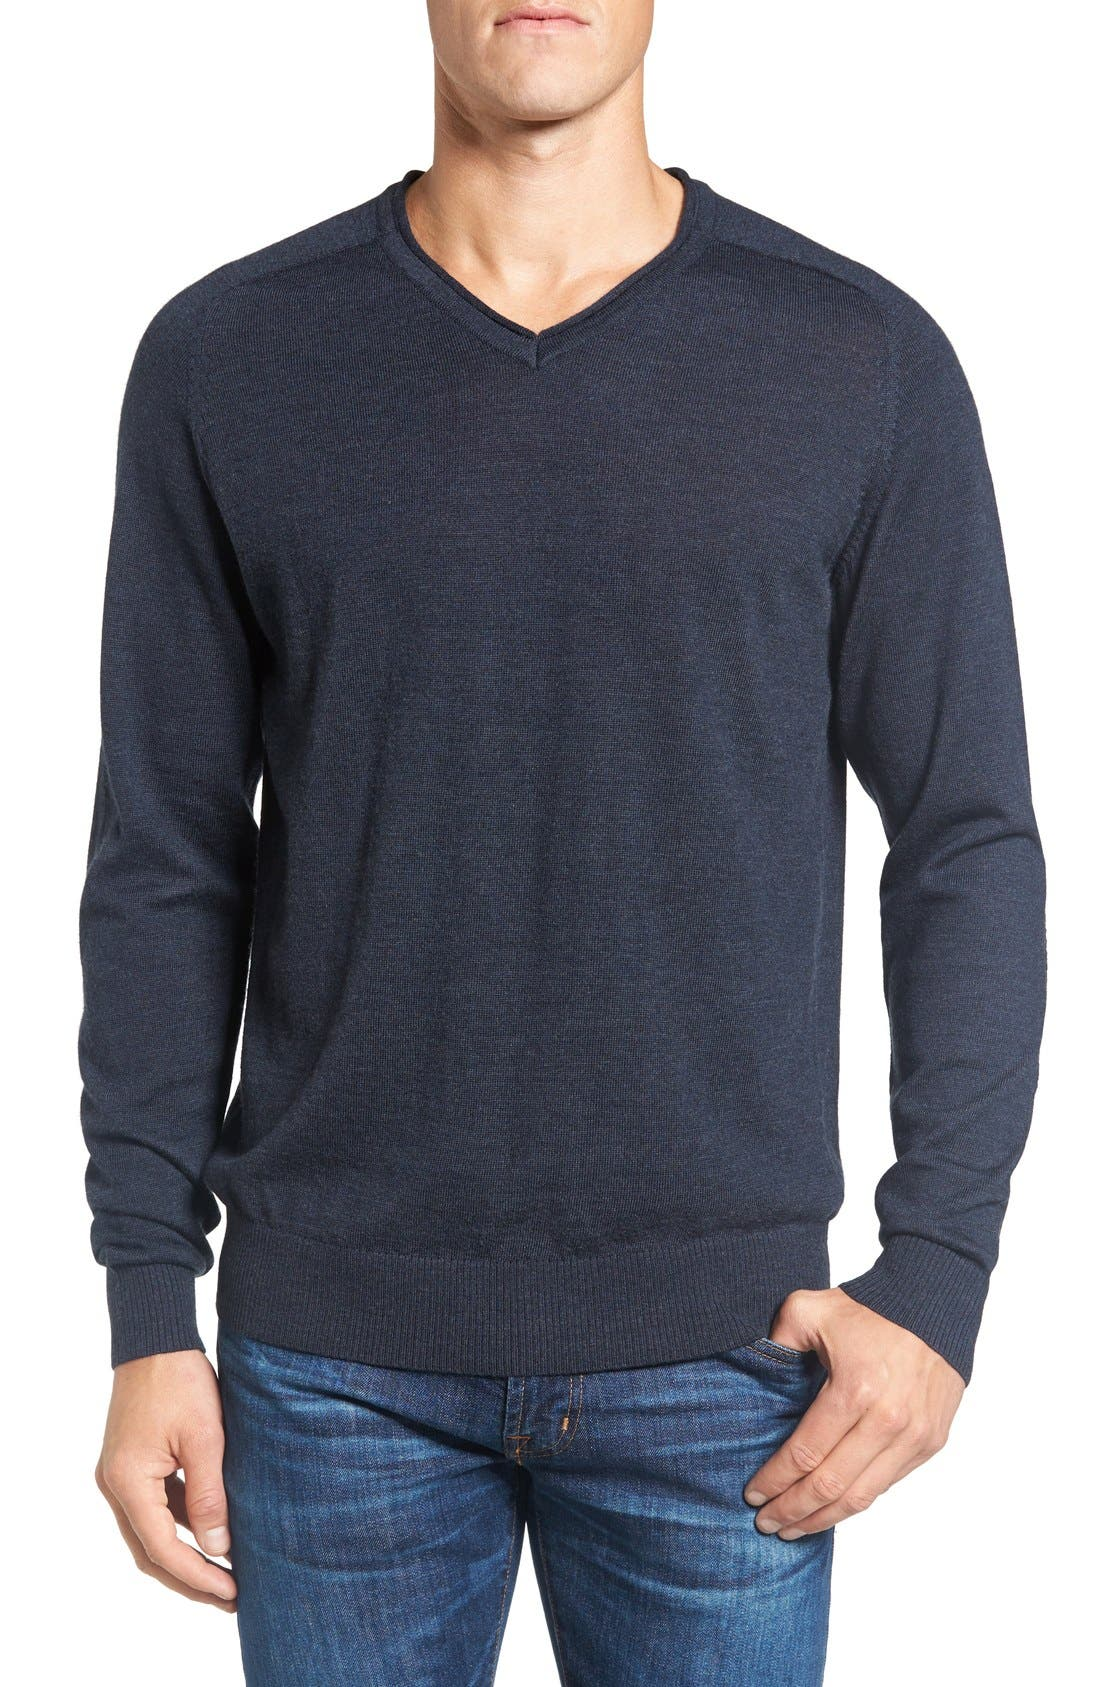 Main Image - Rodd & Gunn 'Burwood Bay' Wool V-Neck Sweater